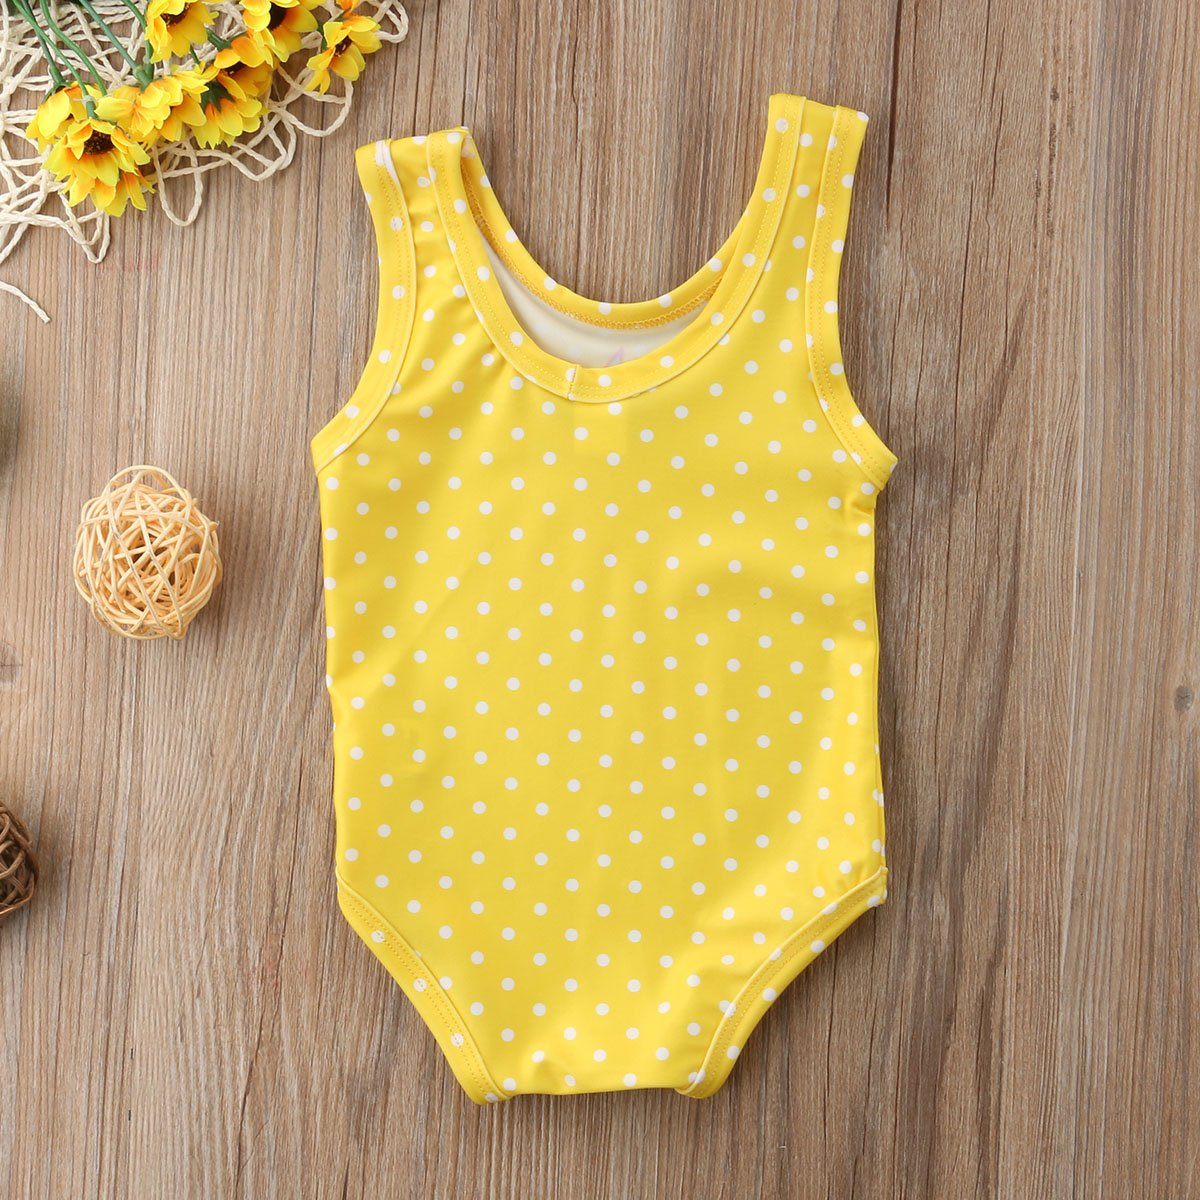 niceclould Summer Baby Girl Tassels Swimsuit Outfit Toddler Fruit Watermelon Bathing Suit Sunsuit Playsuit 0-3Y